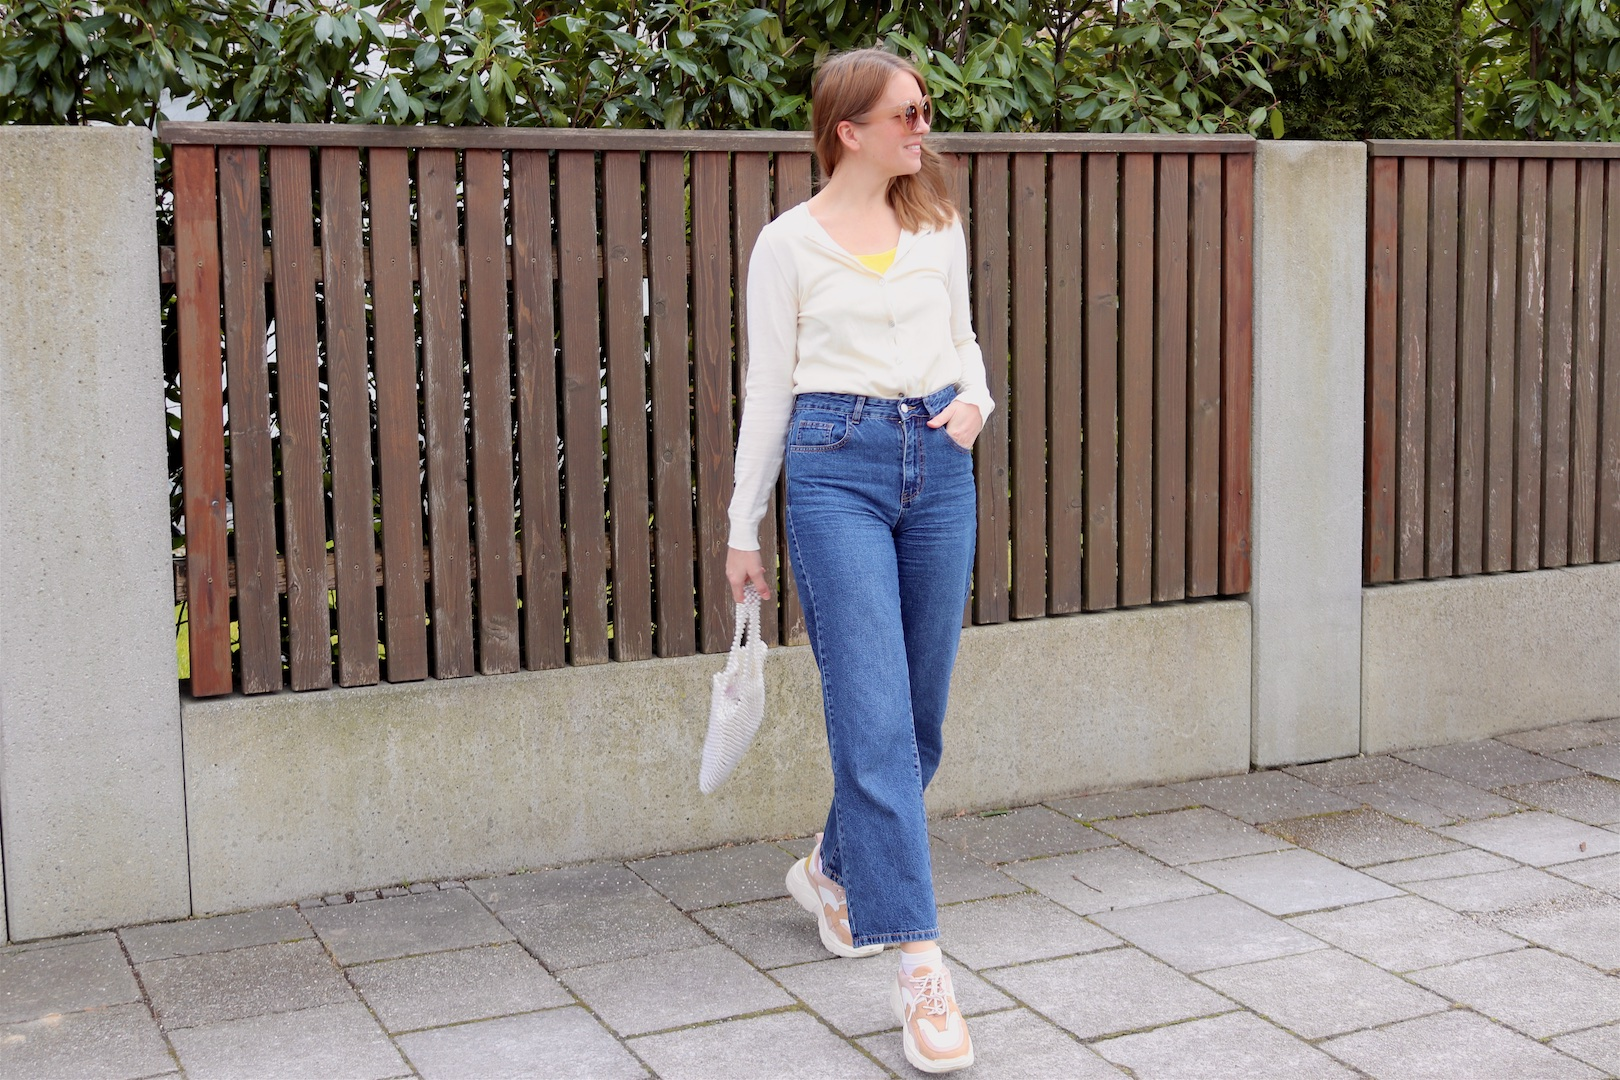 Casual Spring Look. Fashion and Style Blog Girl from Heartfelt Hunt. Girl with blonde hair wearing a cardigan, yellow top, 70s sunglasses, wide leg jeans, pearl bag and chunky sneakers.